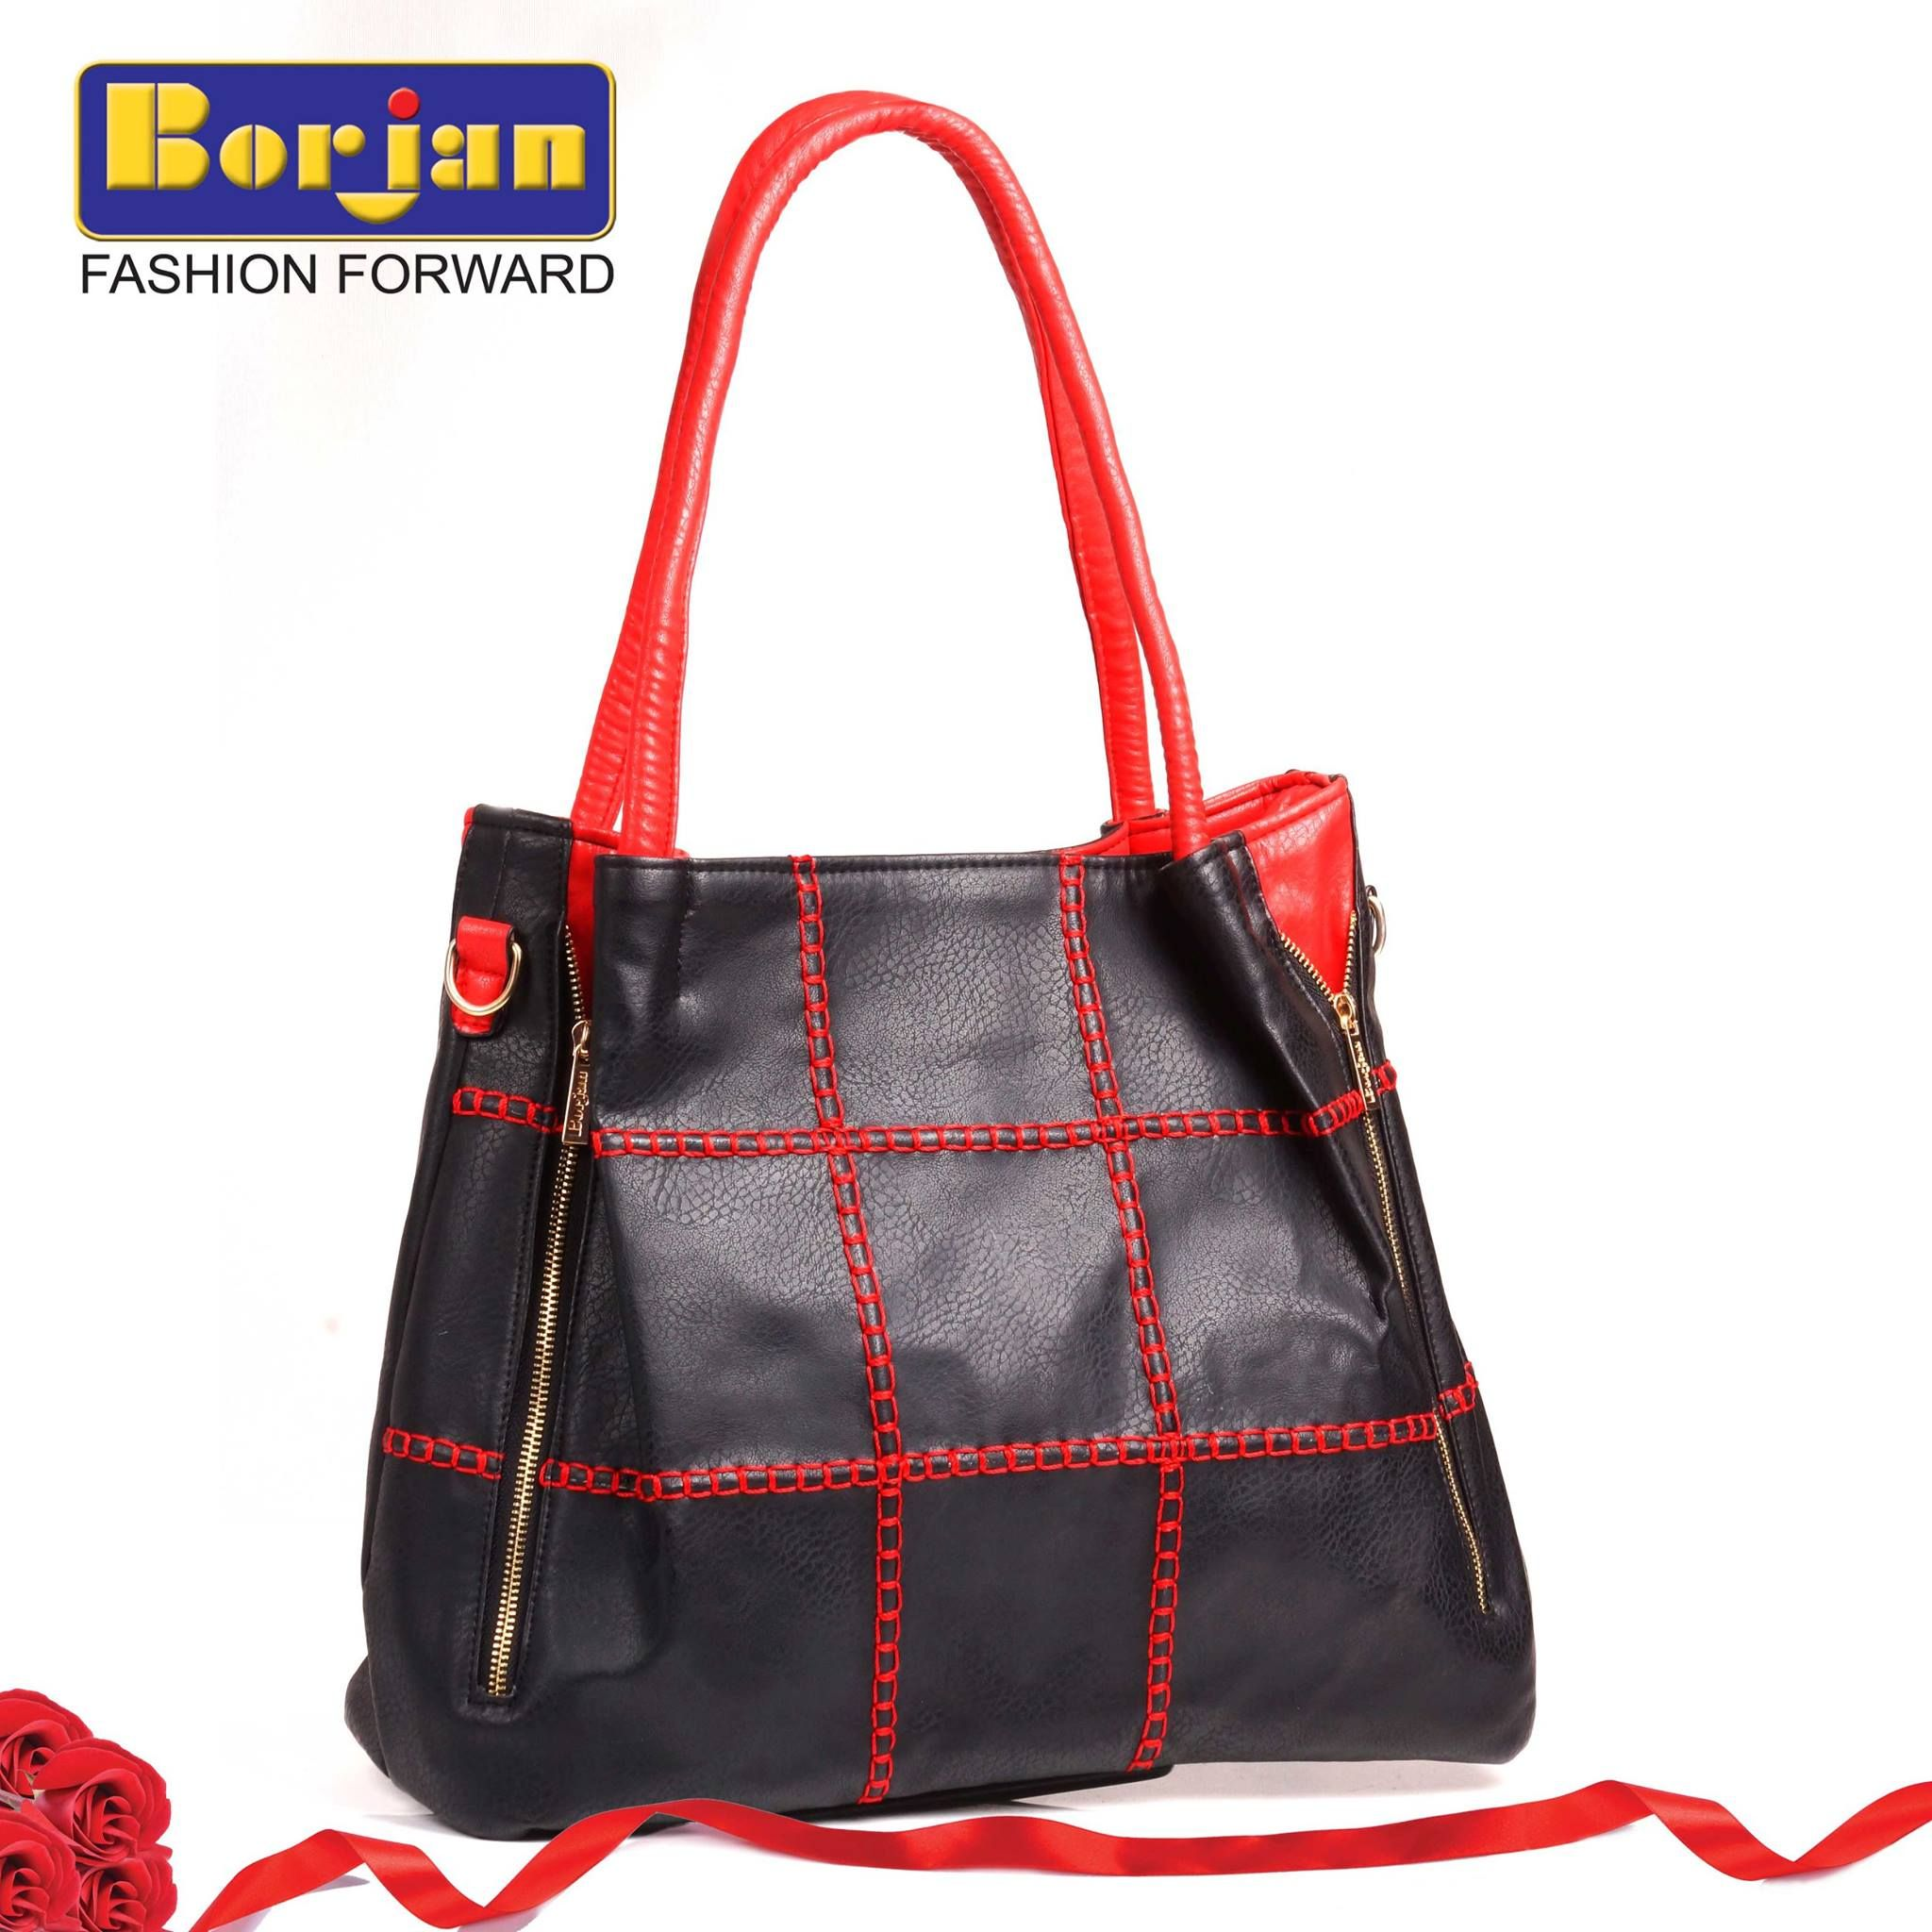 08f85a8756 Feel glamorous with this unique bag! Article  GS0506401 Price  1590 - Follow